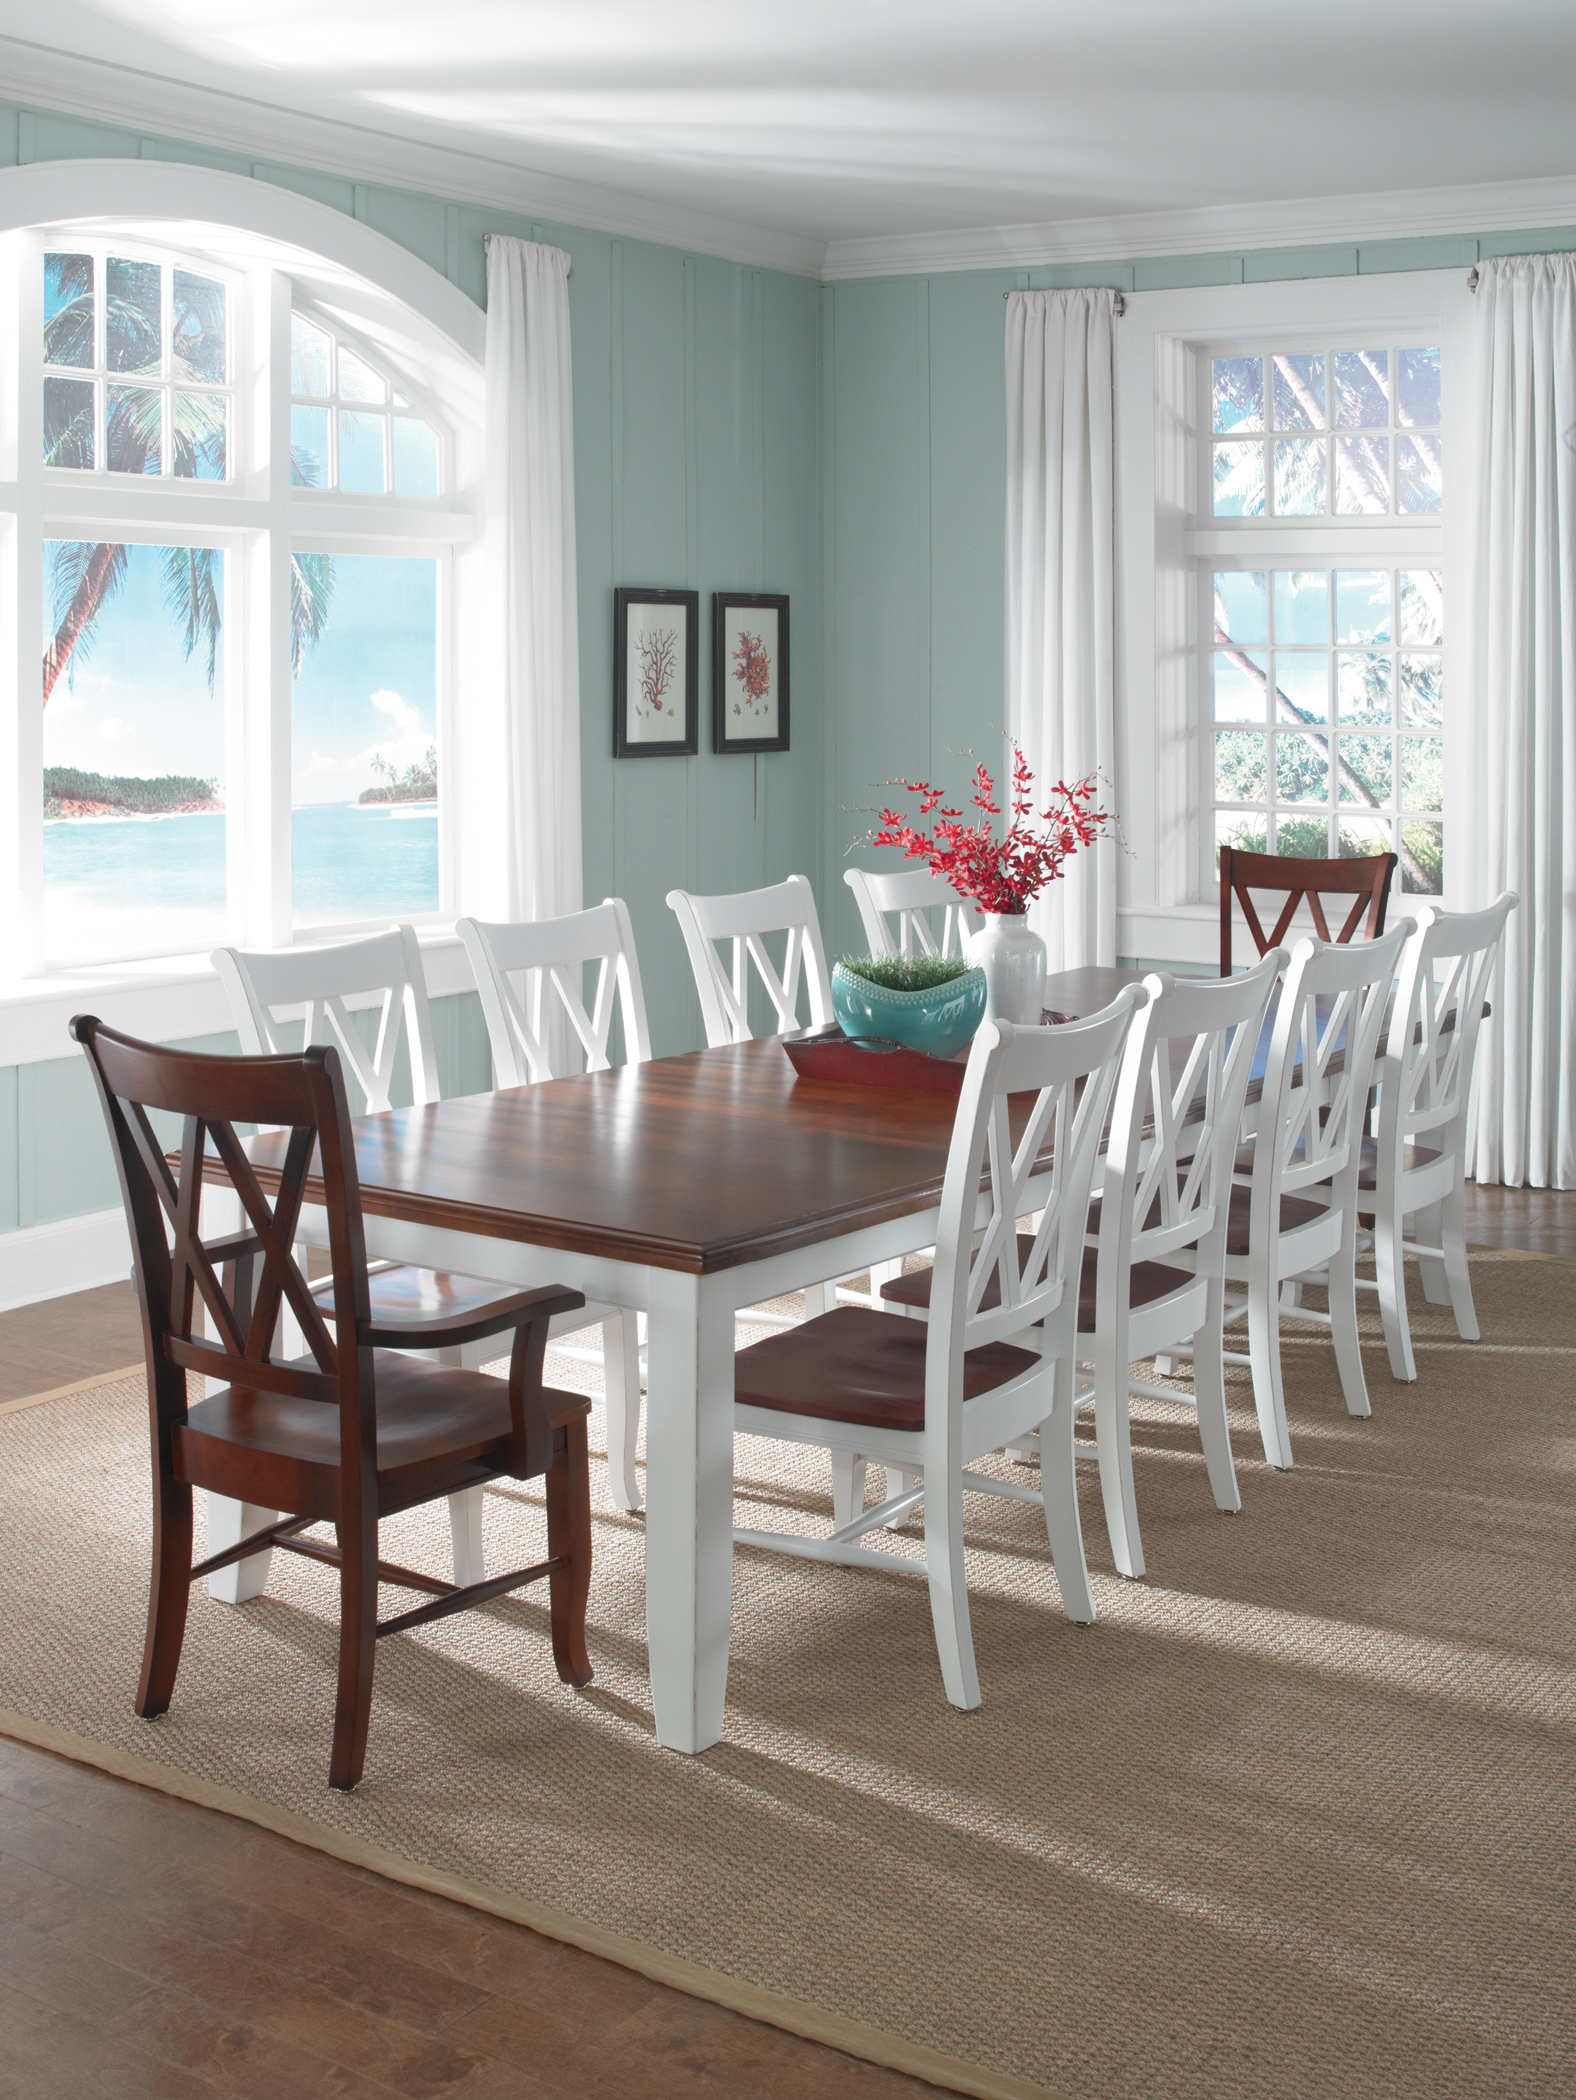 Colored Chairs Whitewood.jpg